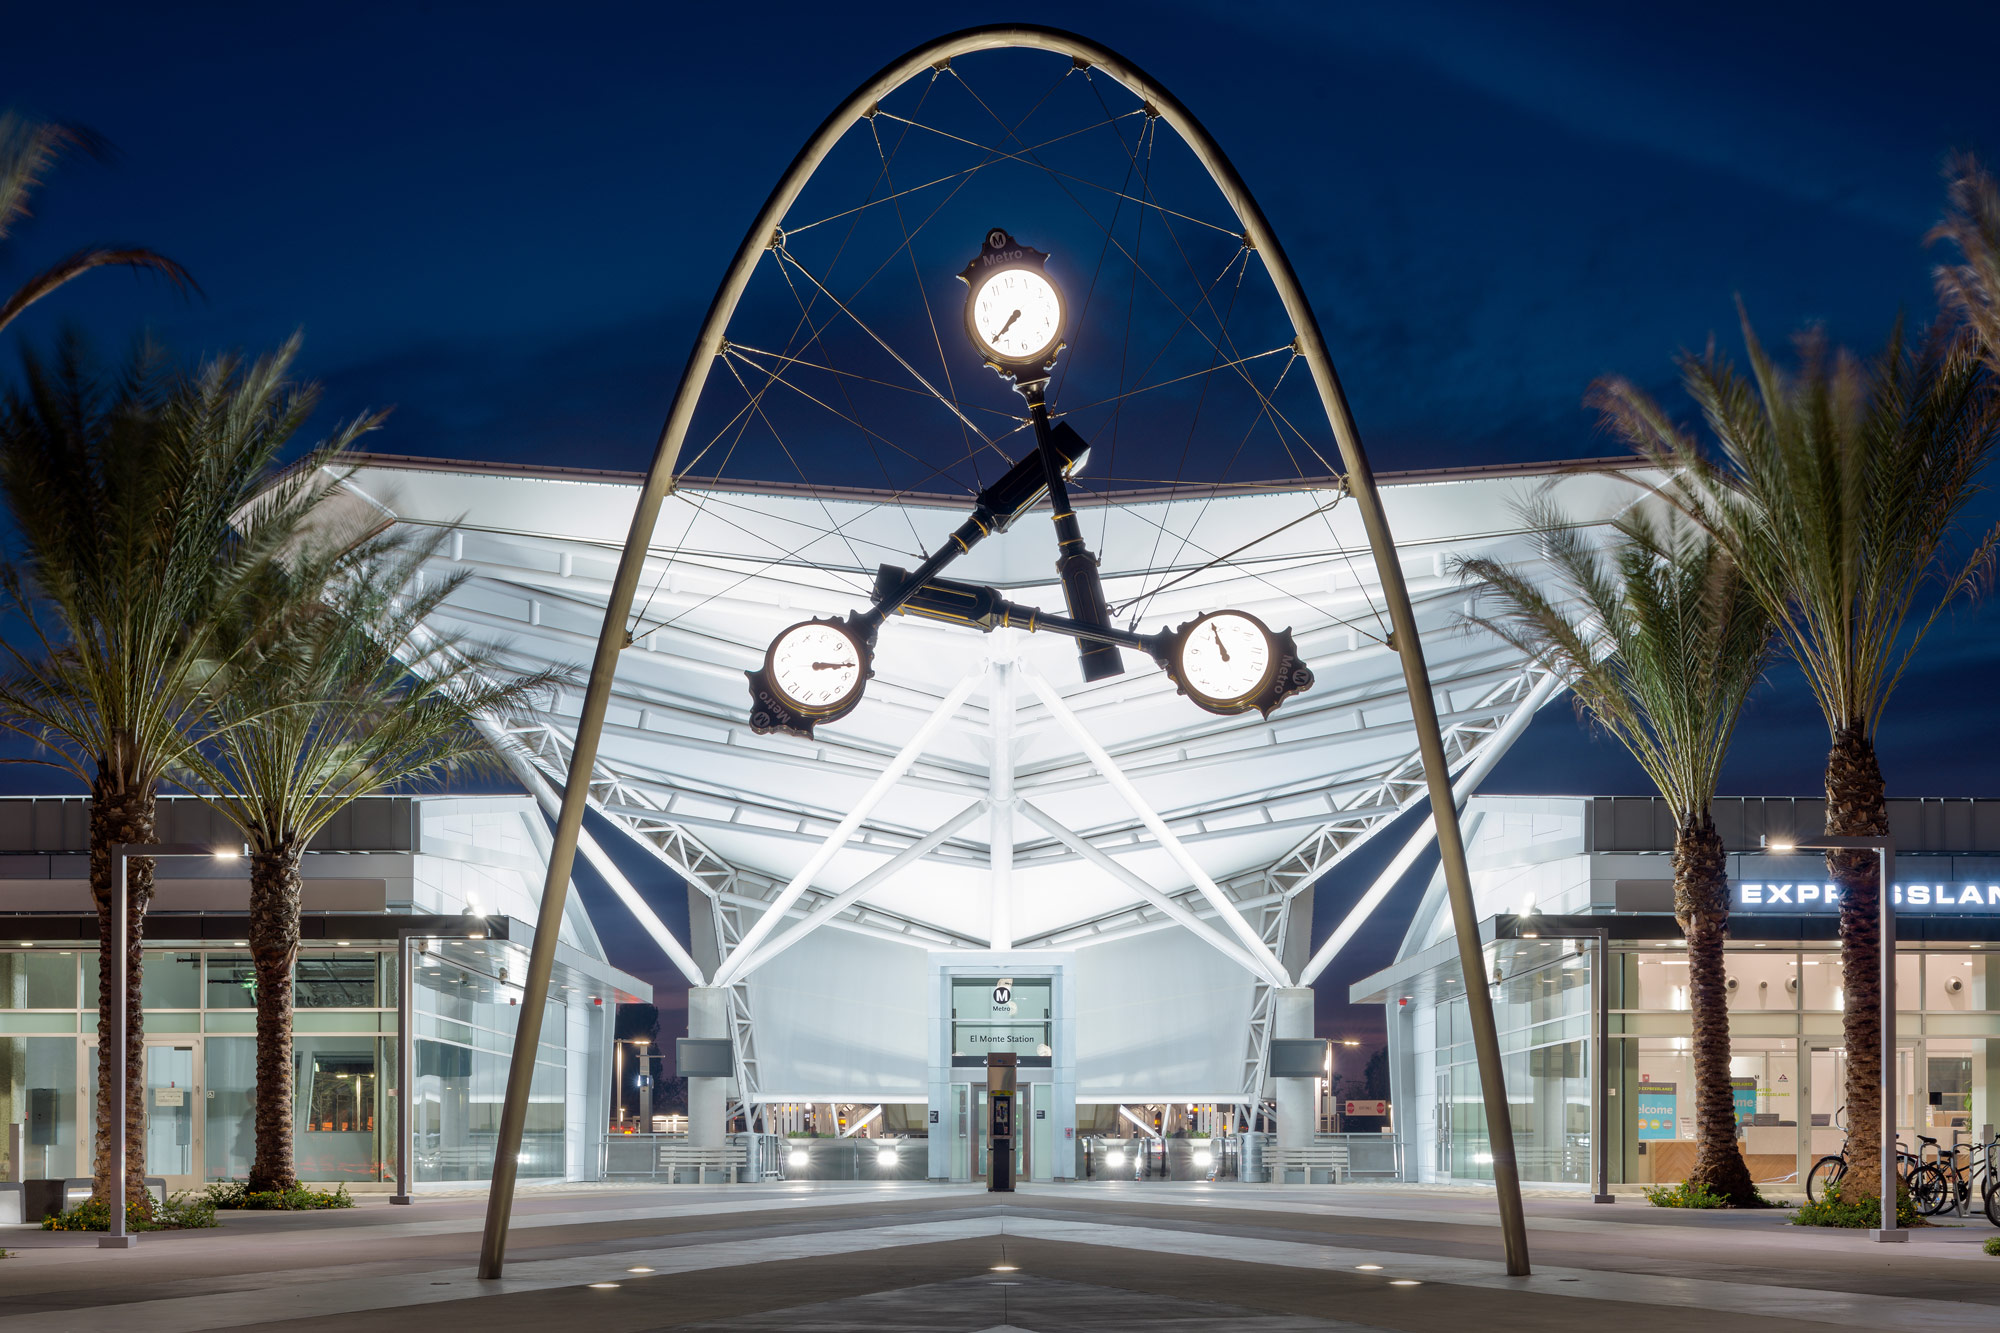 A sculpture of three suspended vintage clocks outside bus station plaza at night.